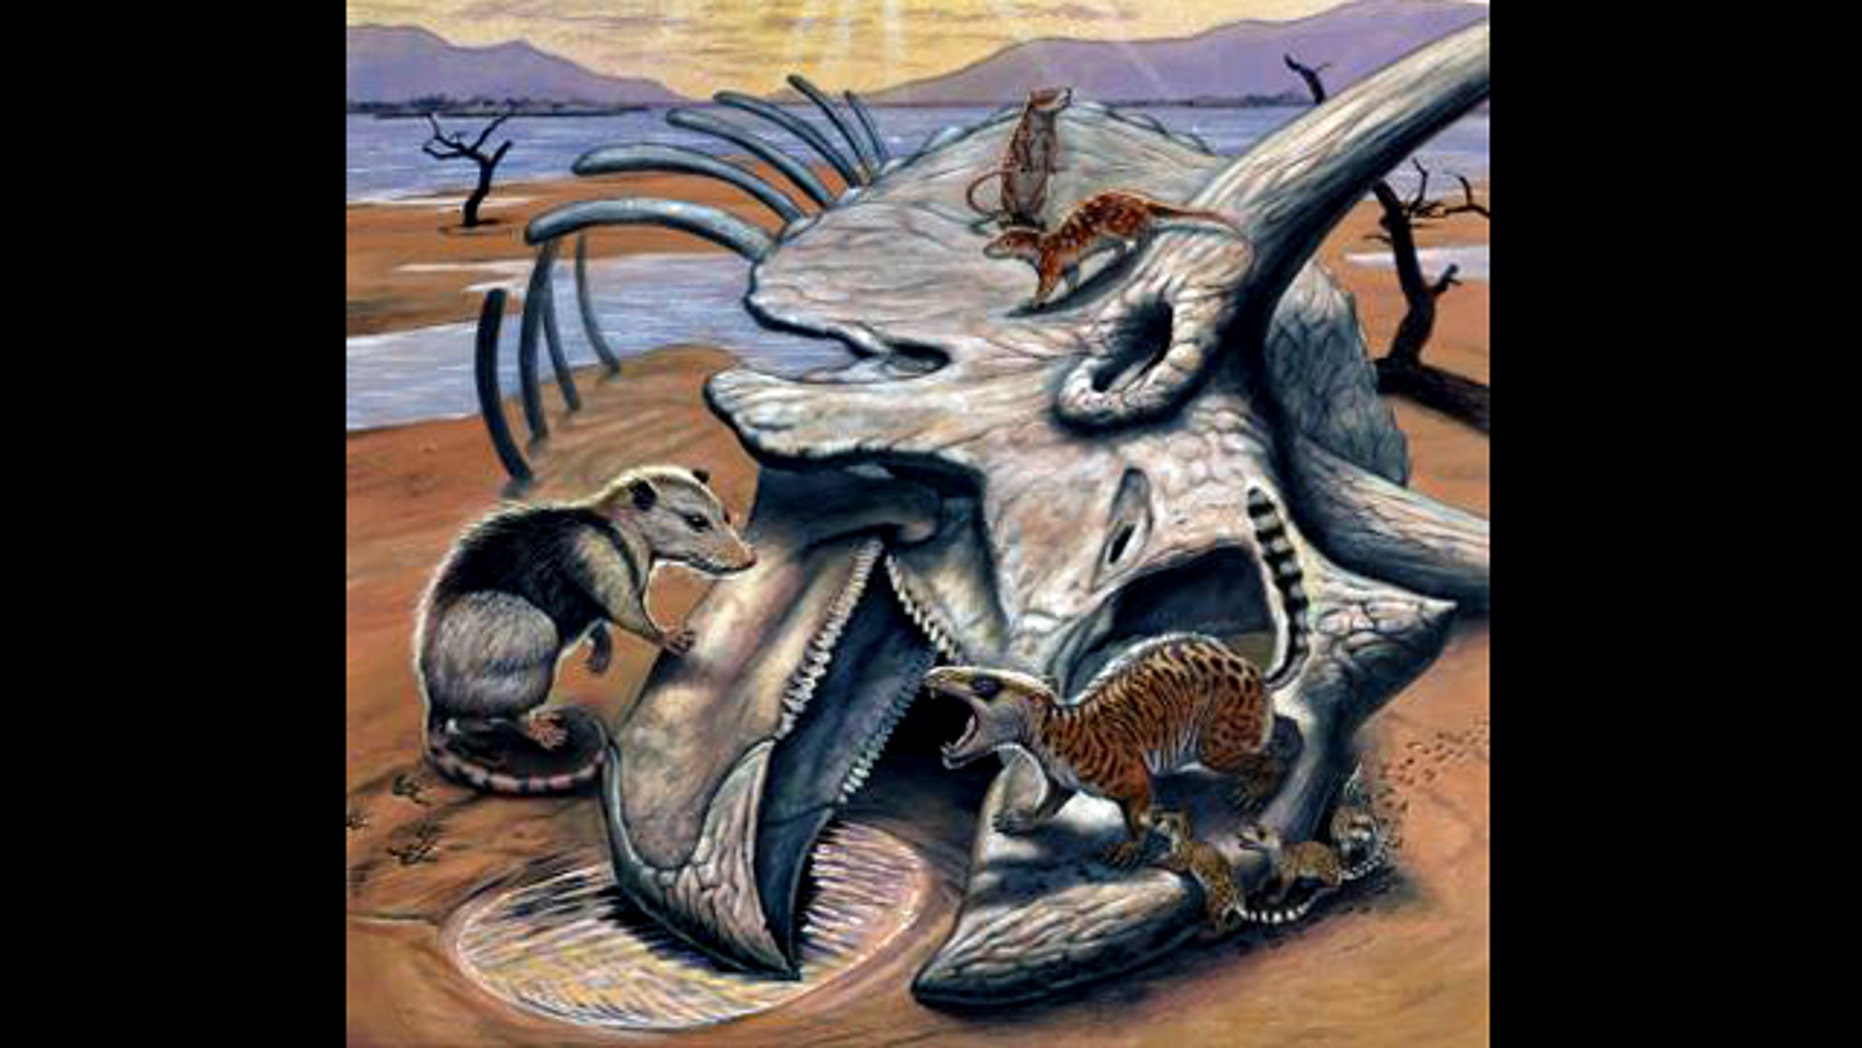 Three small primitive mammals walk over a Triceratops skeleton, one of the last dinosaurs to exist before the mass extinction that gave way to the age of mammals.